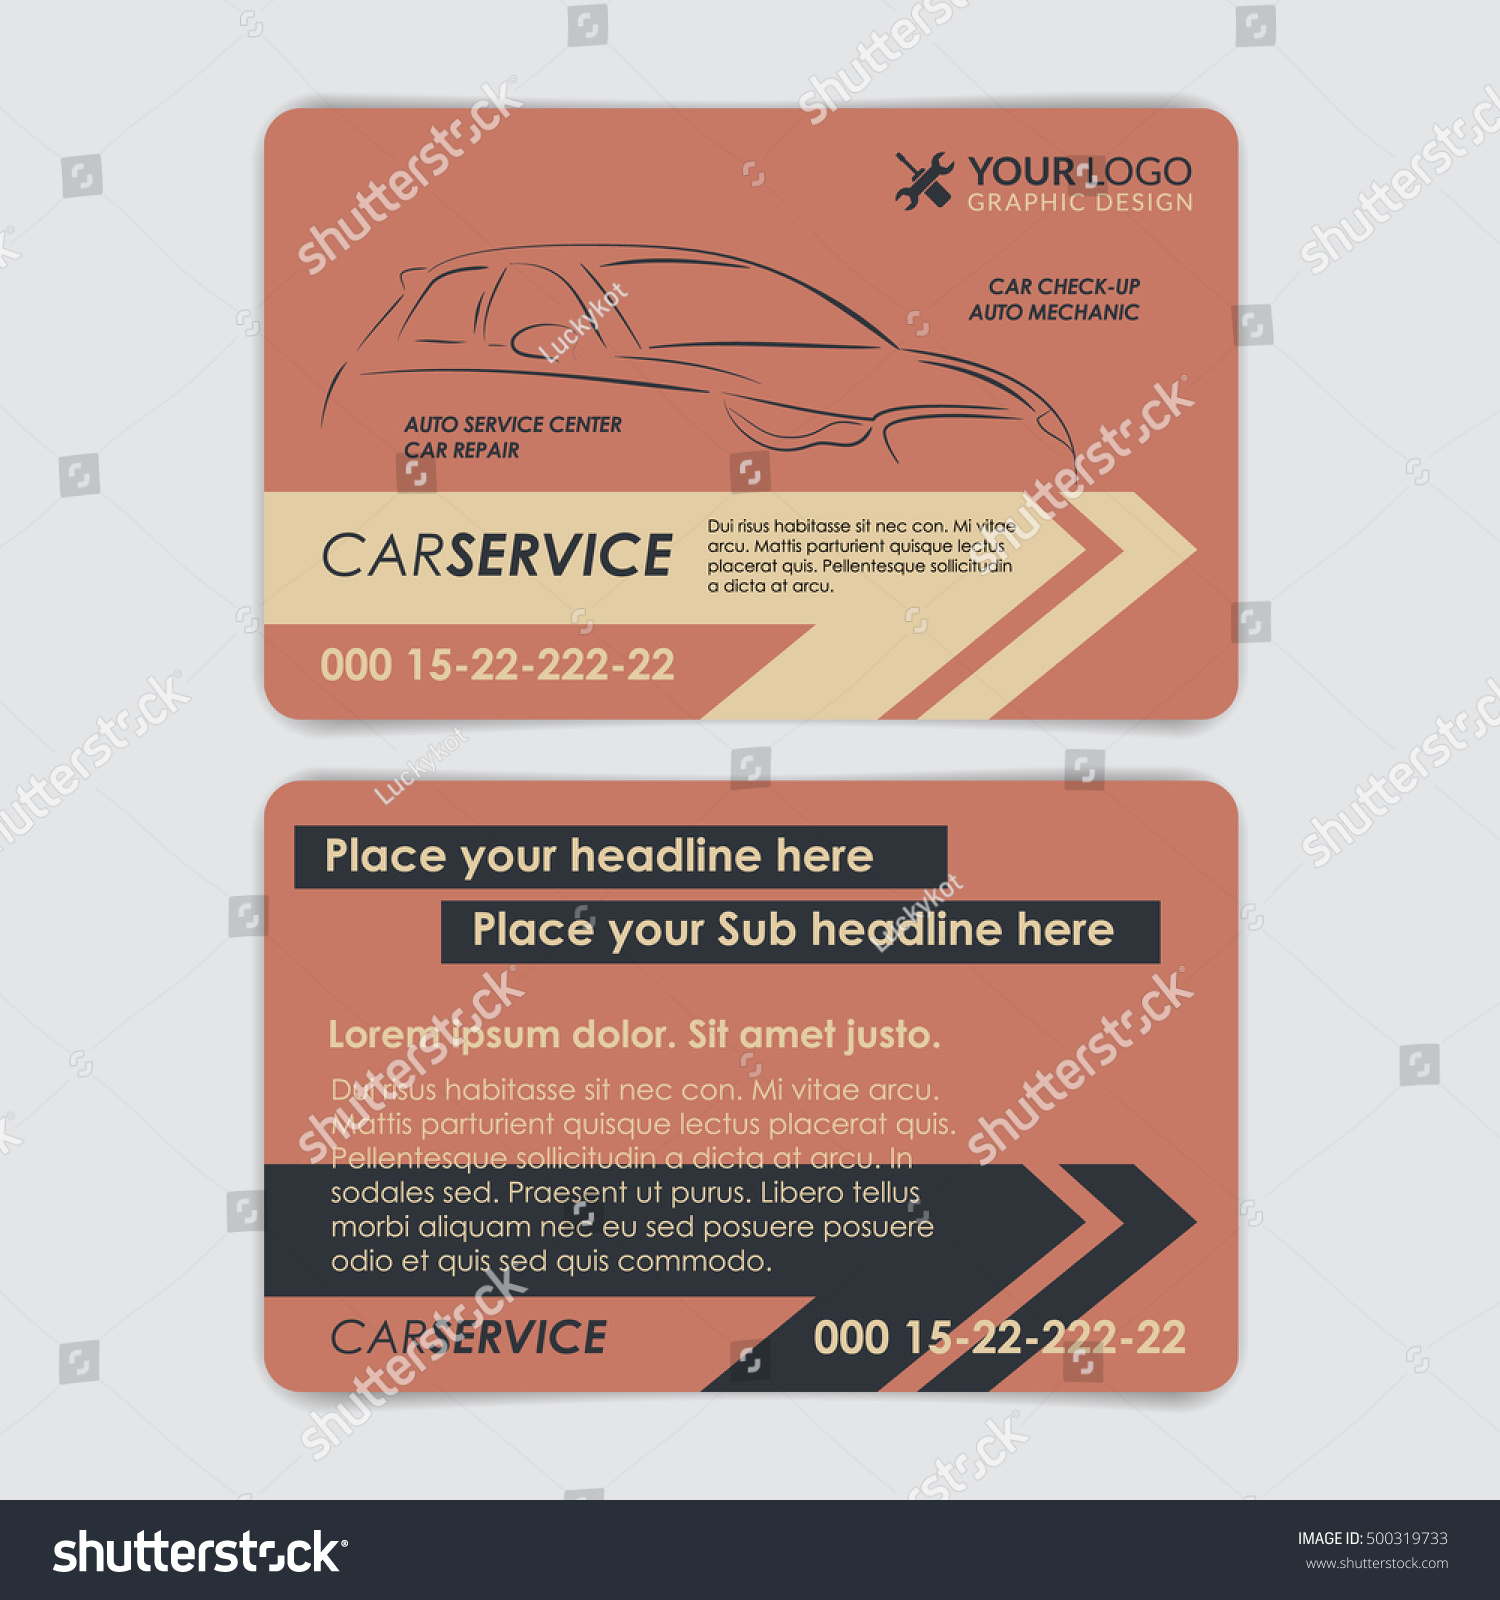 Service car business card template create stock vector 500319733 service car business card template create your own business cards vector illustration colourmoves